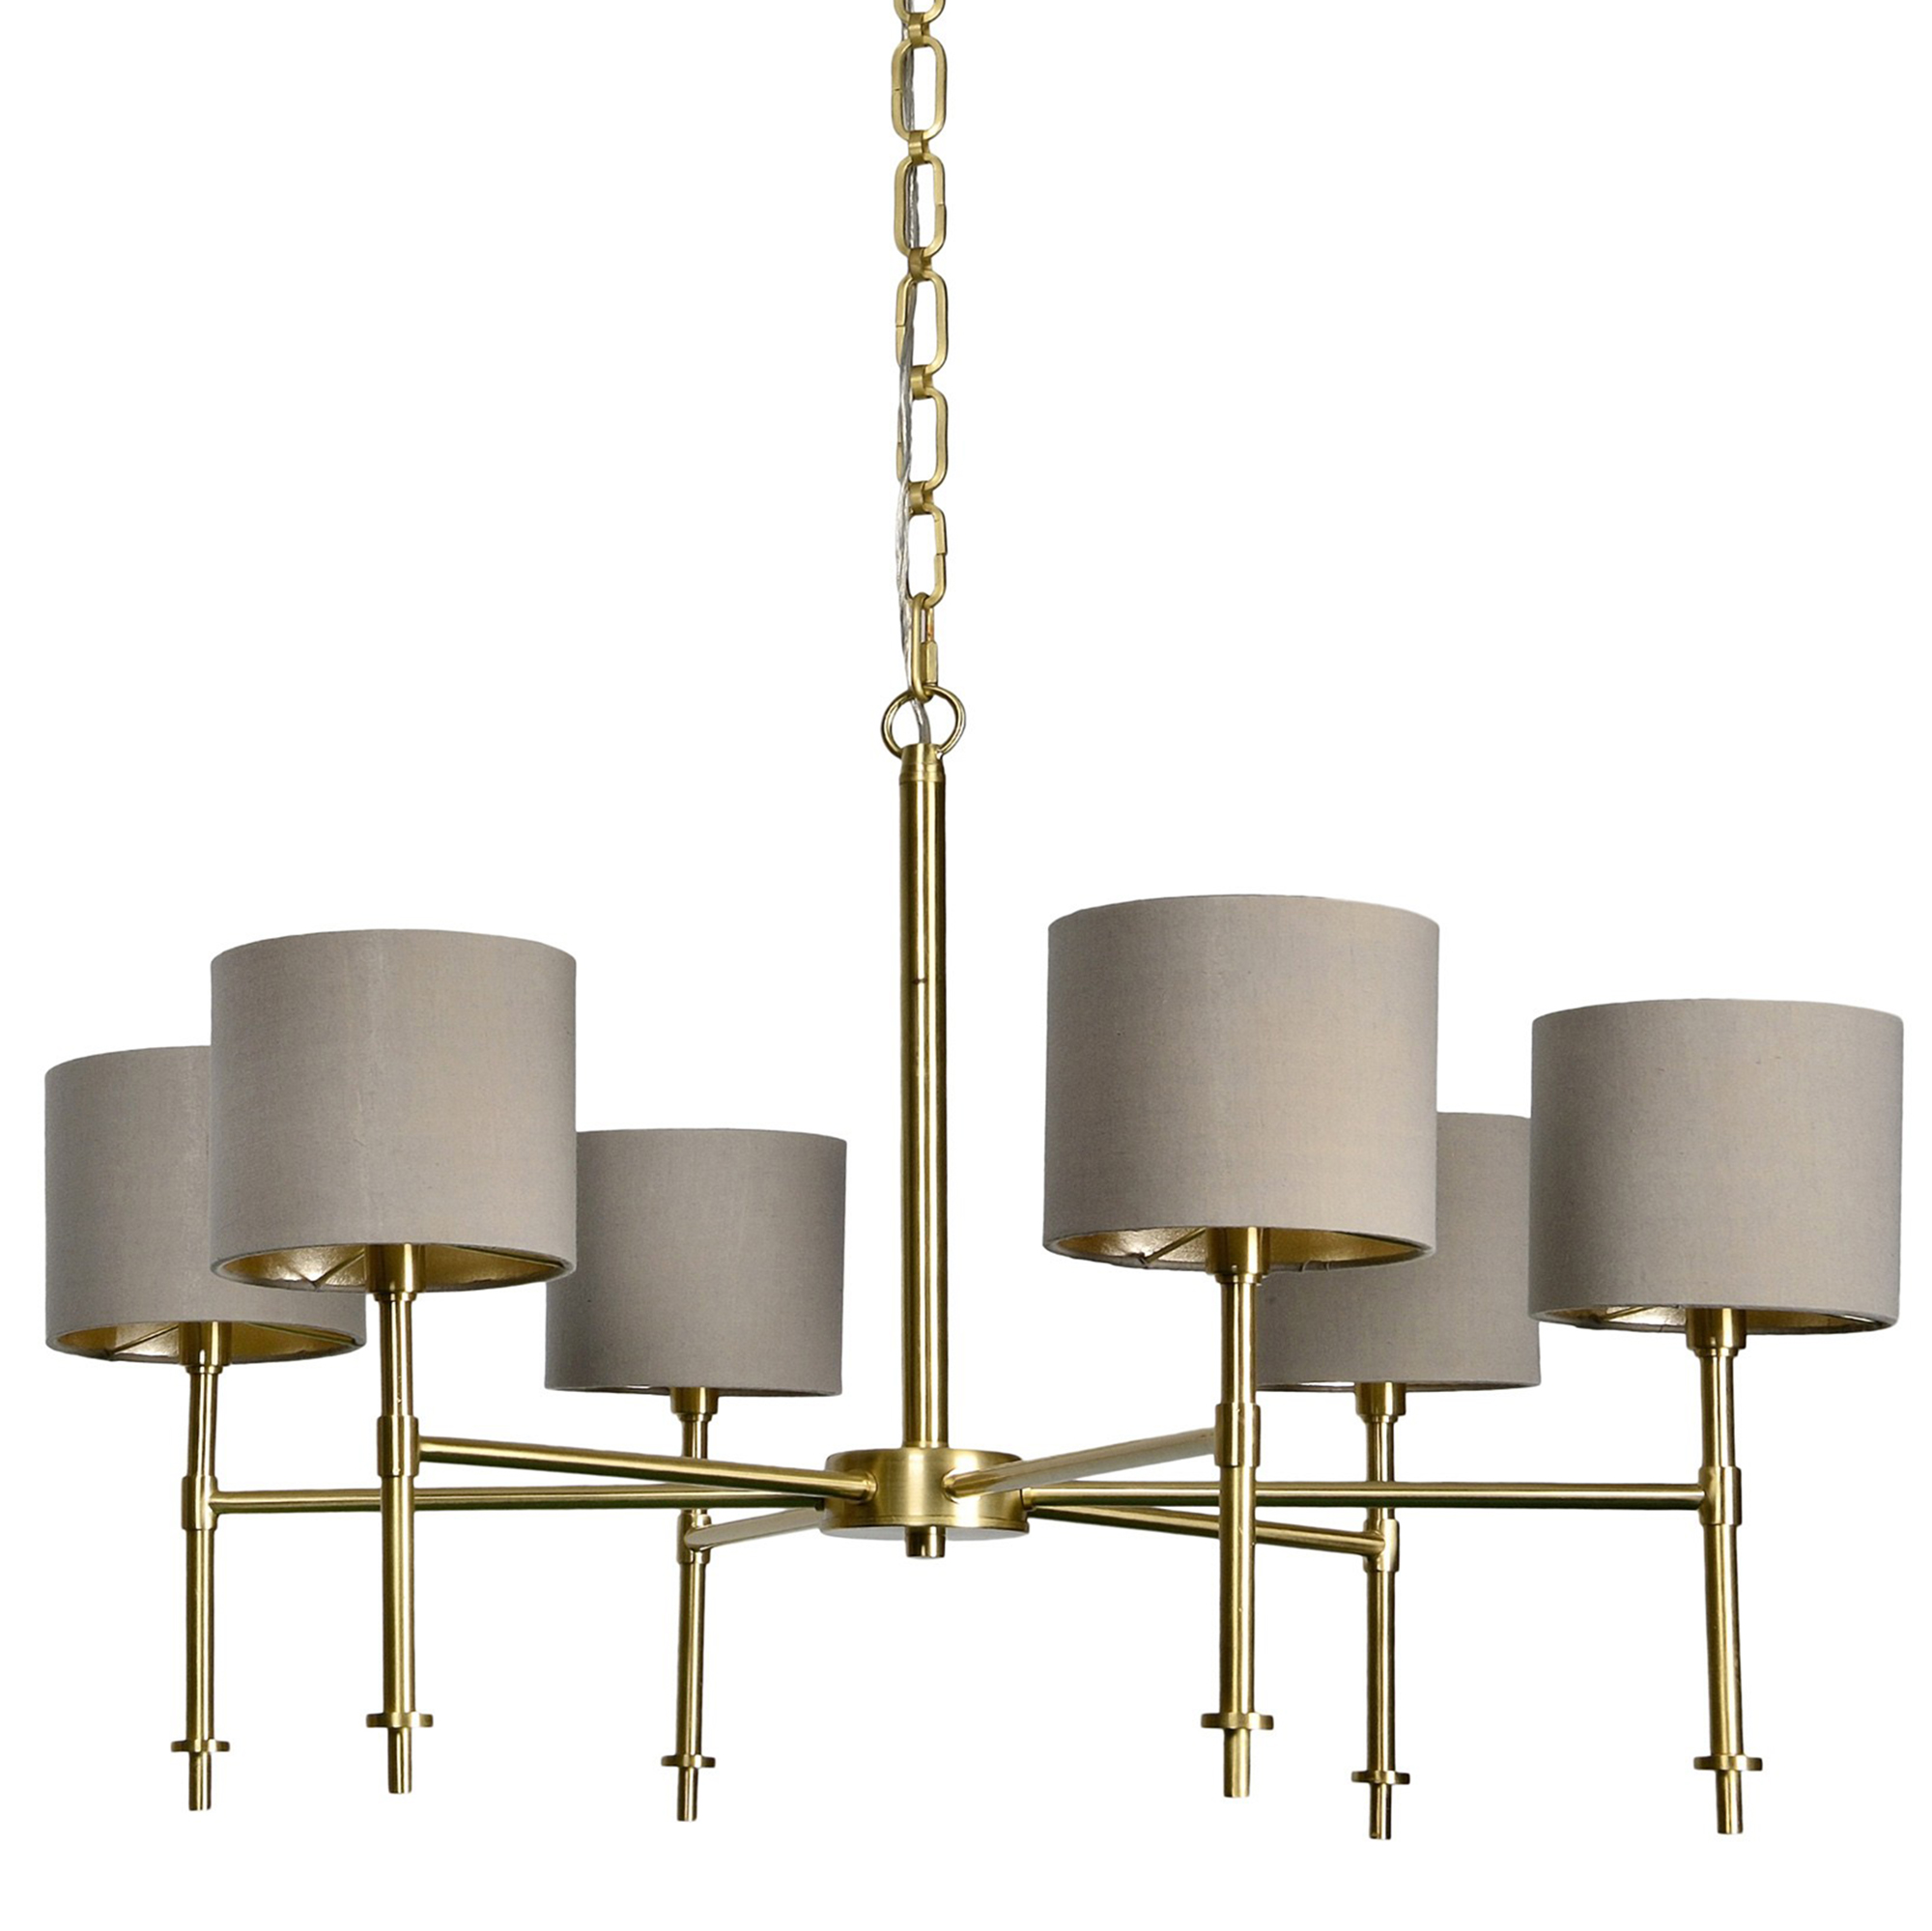 Chandeliere w/Brushed Gold w/ Shades